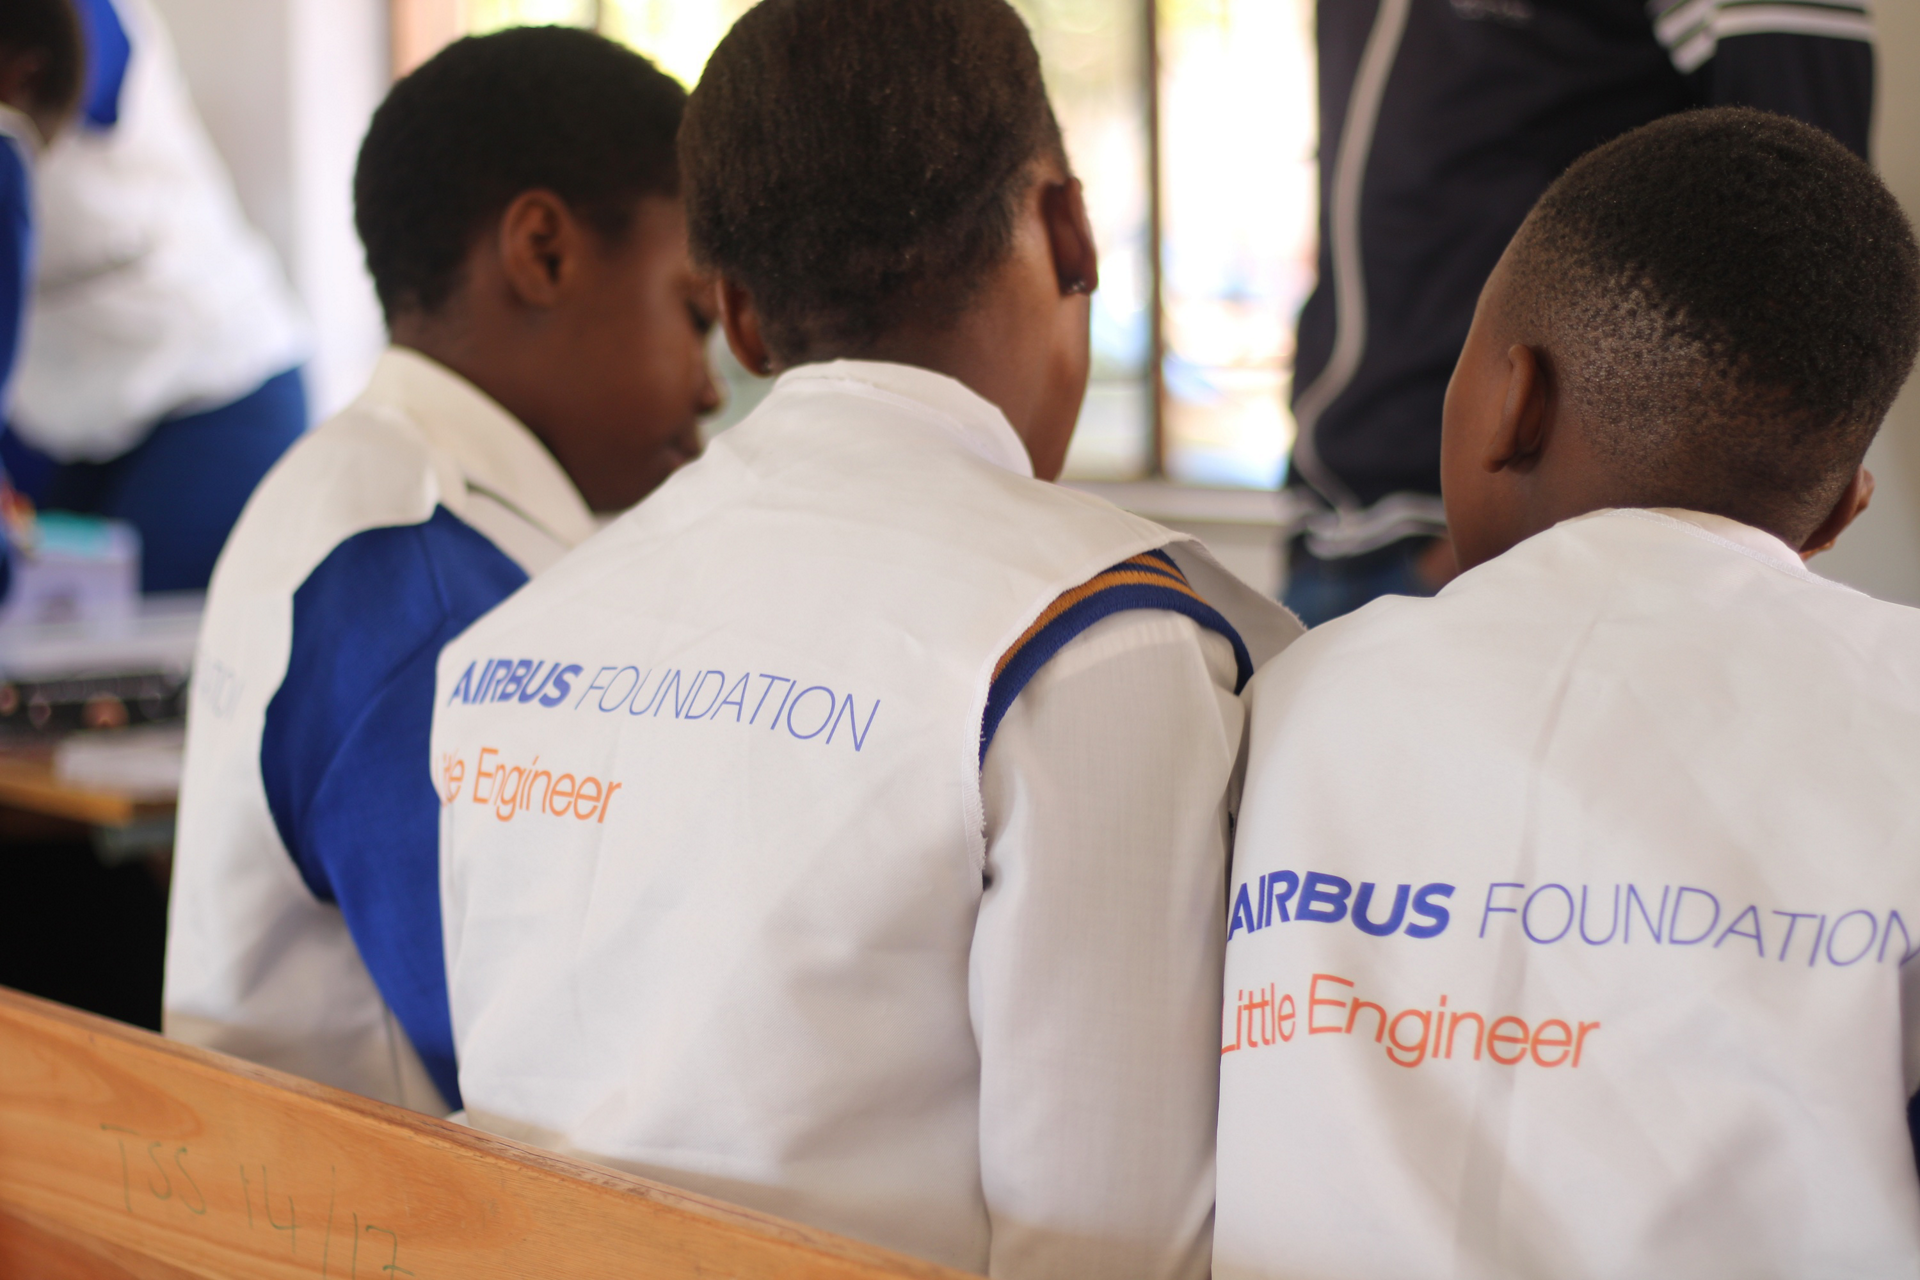 Students participate in an Airbus Foundation Little Engineer workshop